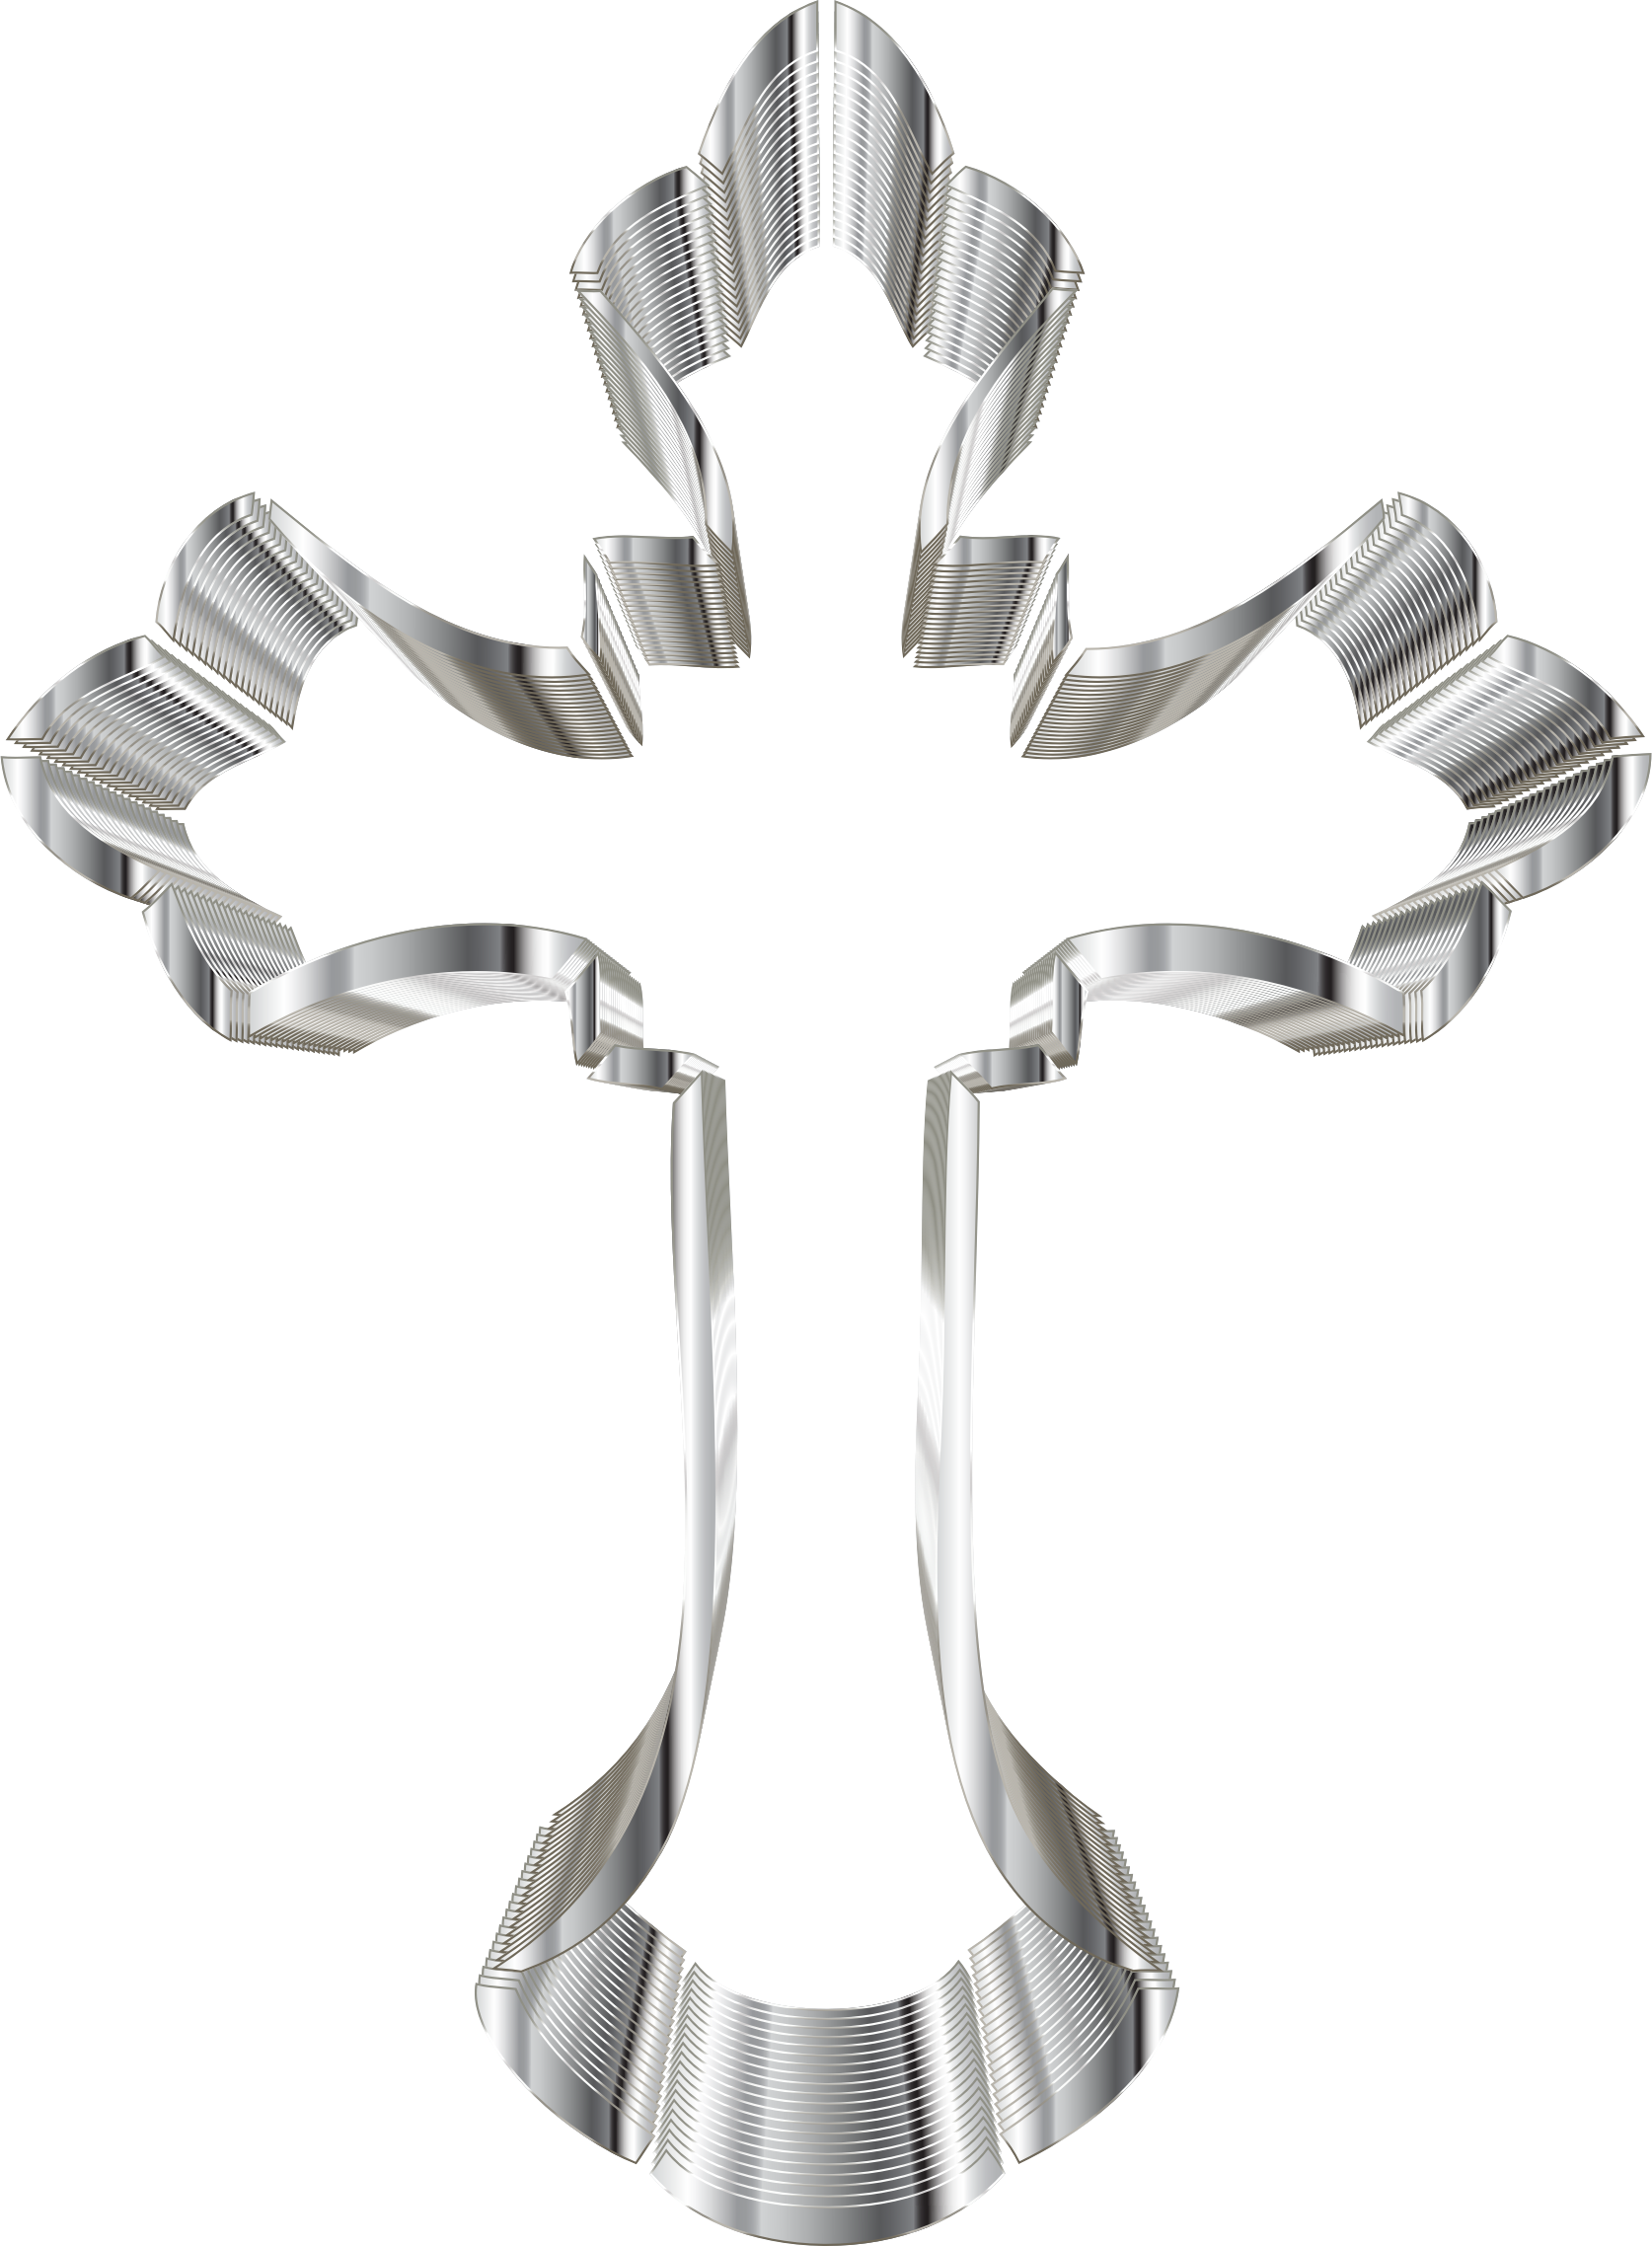 Ornate cross png. Clipart chrome no background